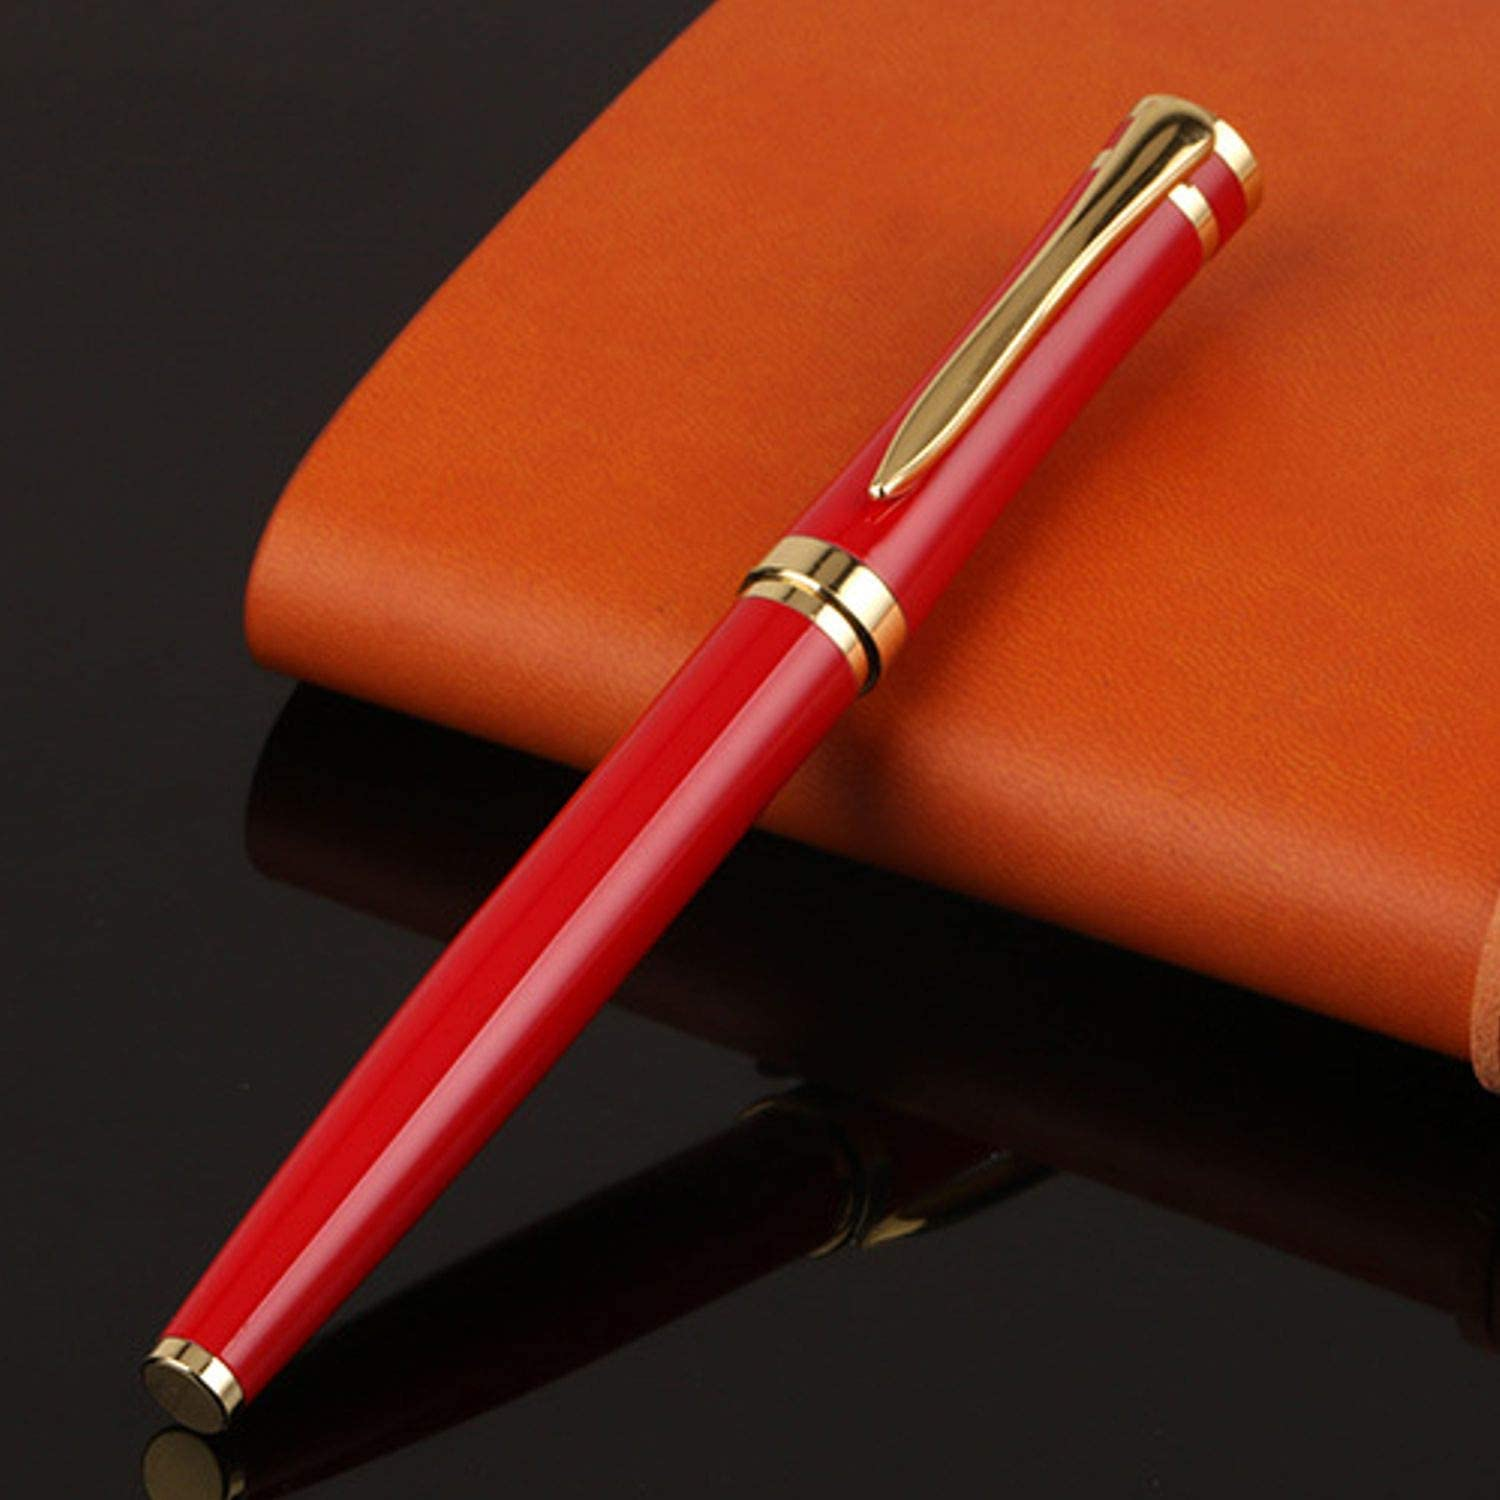 Personalized Quality Full Metal Ball Point Black Ink Pen- Free Engraving (Red/Gold)